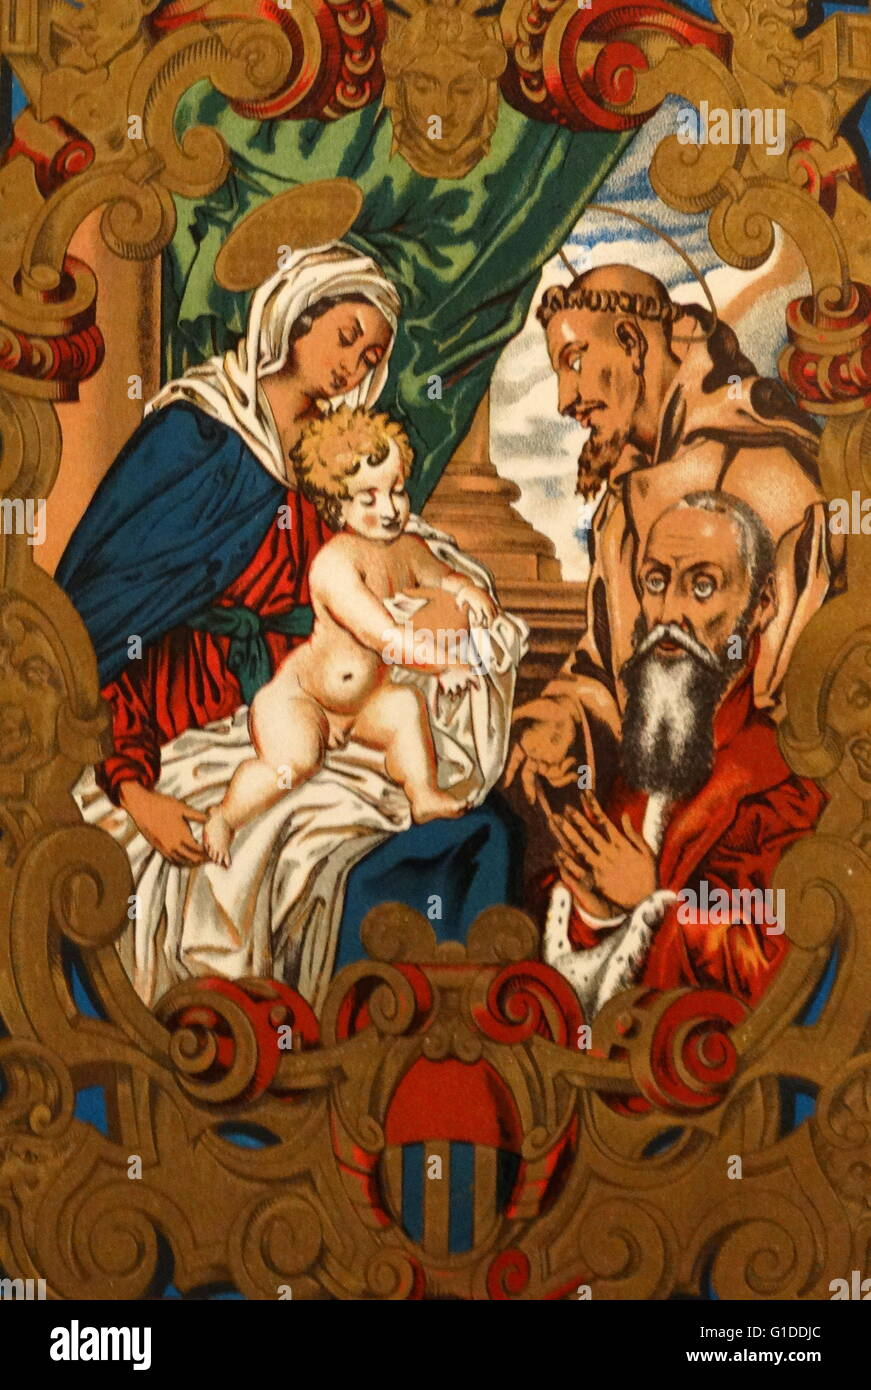 Illumination from the Venetian Diploma of Semitecolo depicting the Virgin and Child. Dated 16th Century - Stock Image